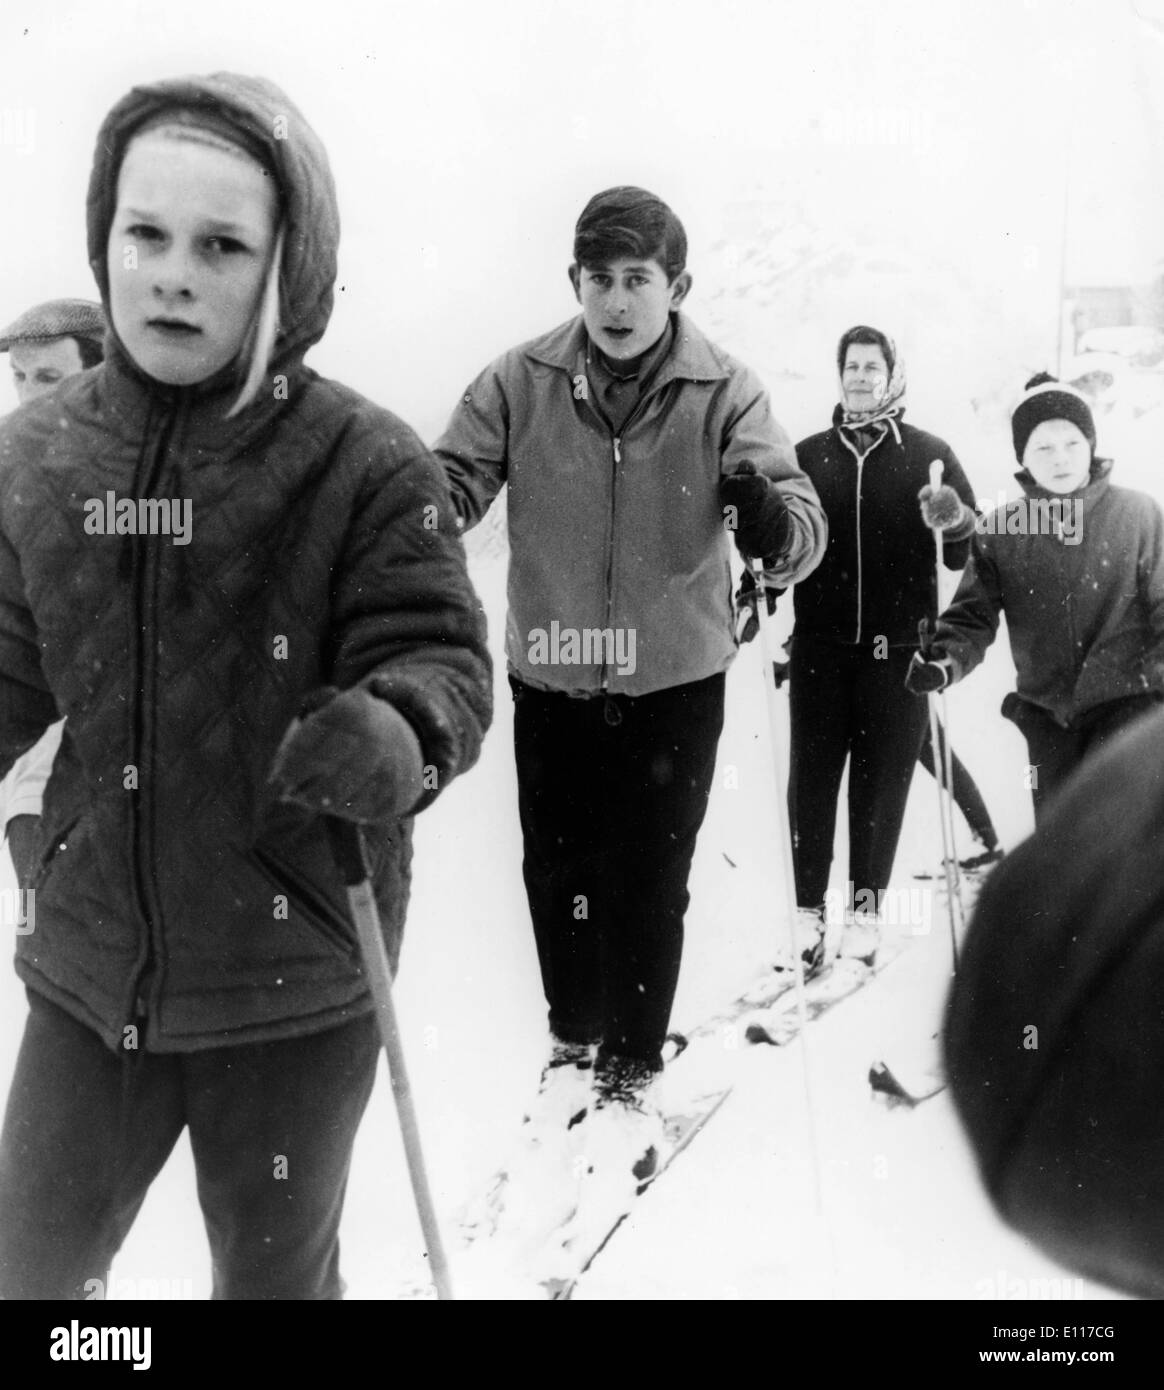 Prince Charles during a ski lesson - Stock Image